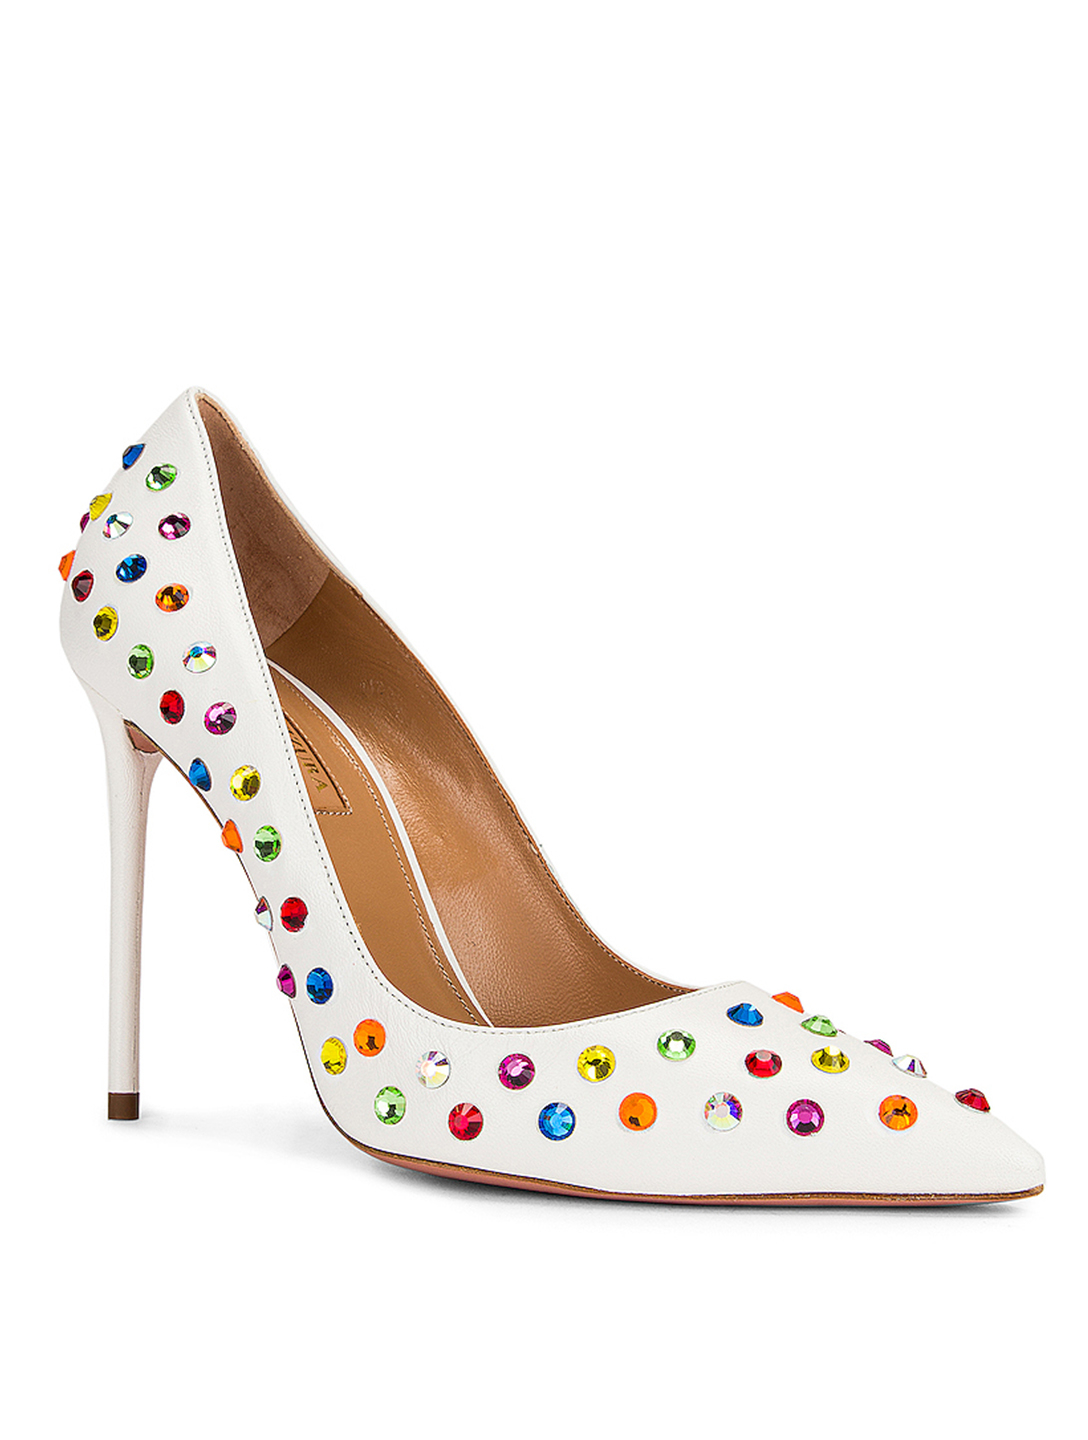 AQUAZZURA Disco Summer 105 Crystal Leather Pumps Women's White